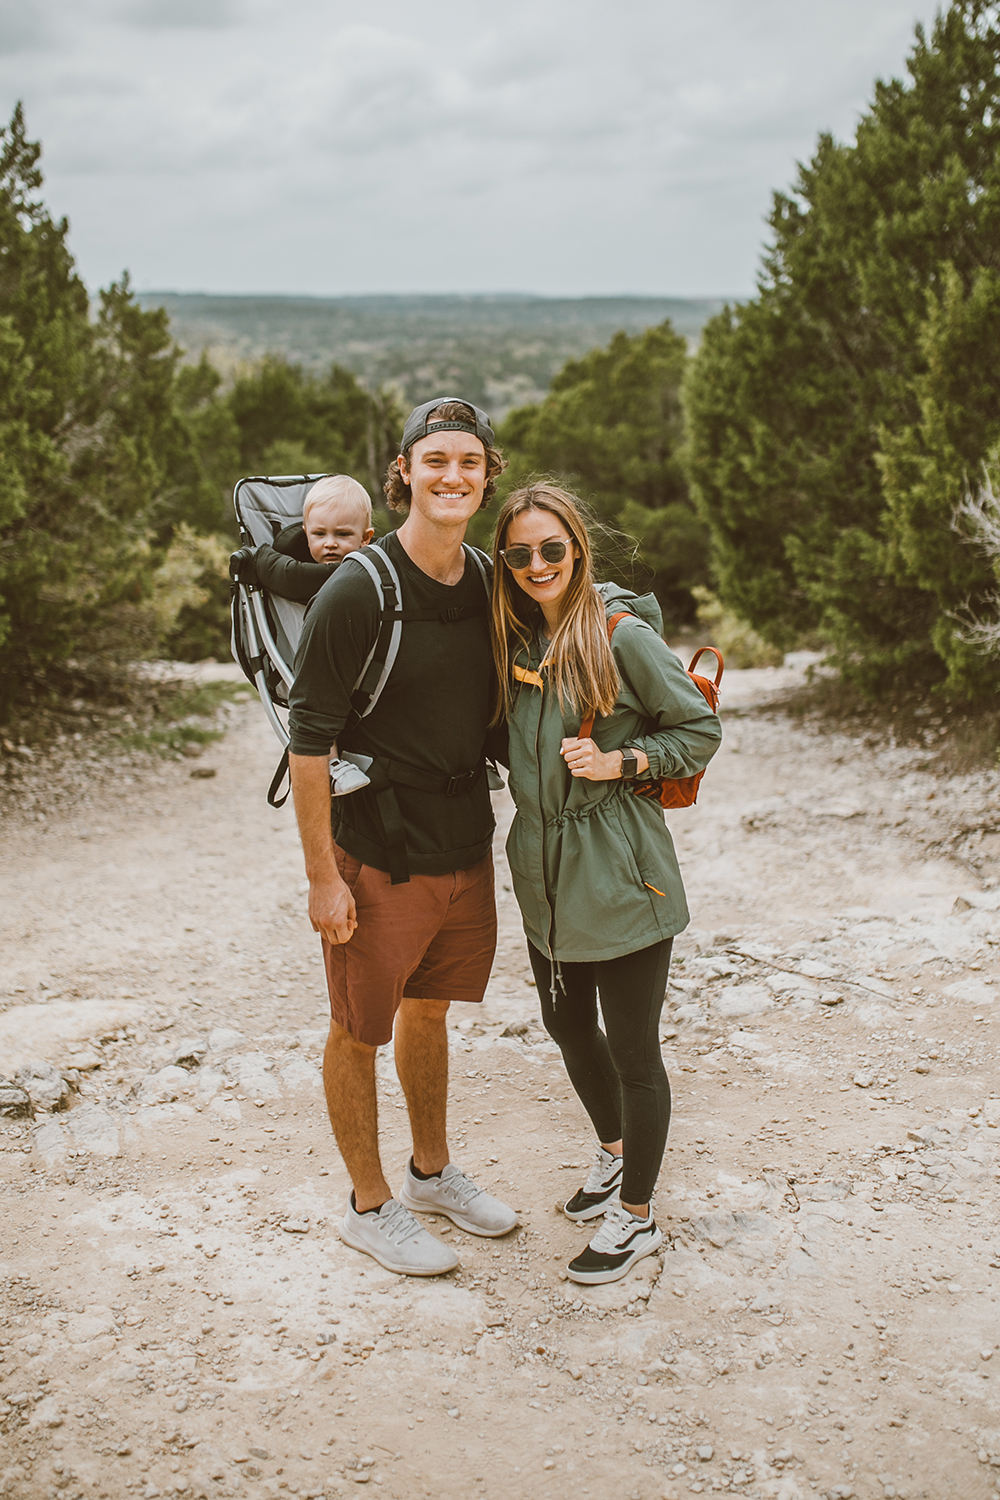 livvyland-blog-olivia-watson-austin-texas-greenbelt-hike-nature-walk-vans-ultrarange-baby-backpack-5